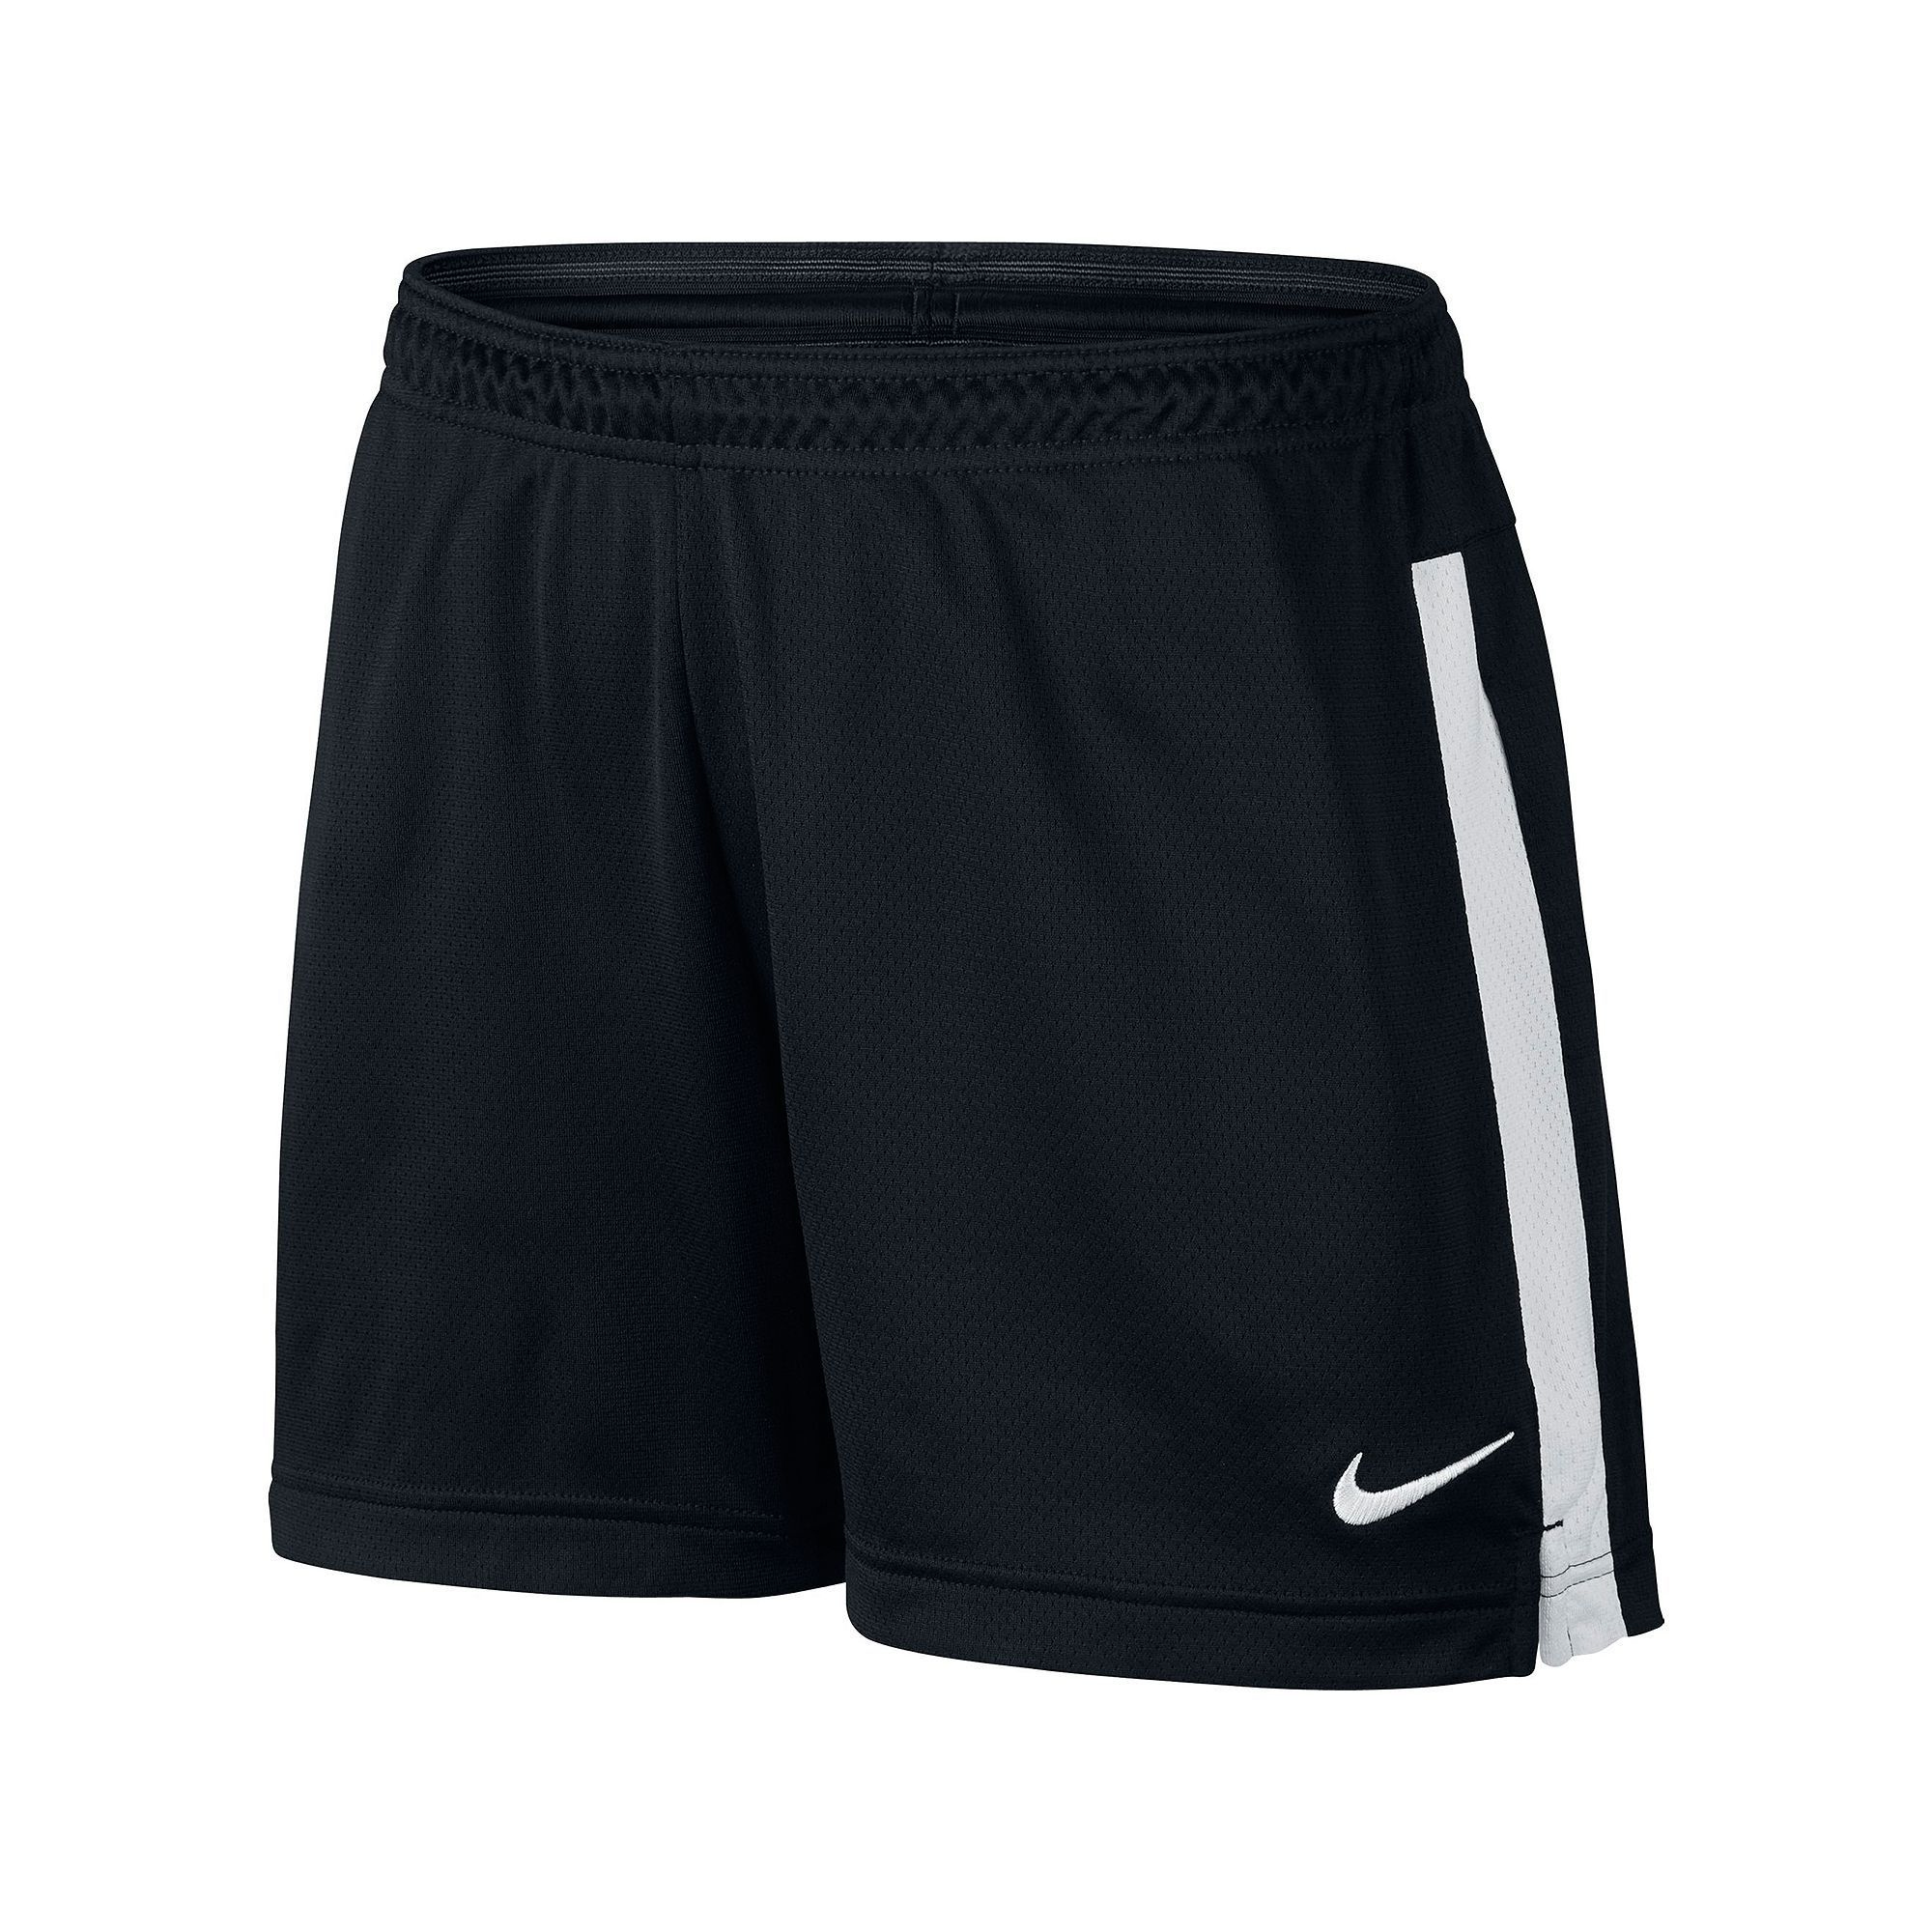 407de585b1 Women's Nike Dri-FIT Academy Mesh Knit Soccer Shorts in 2019 ...